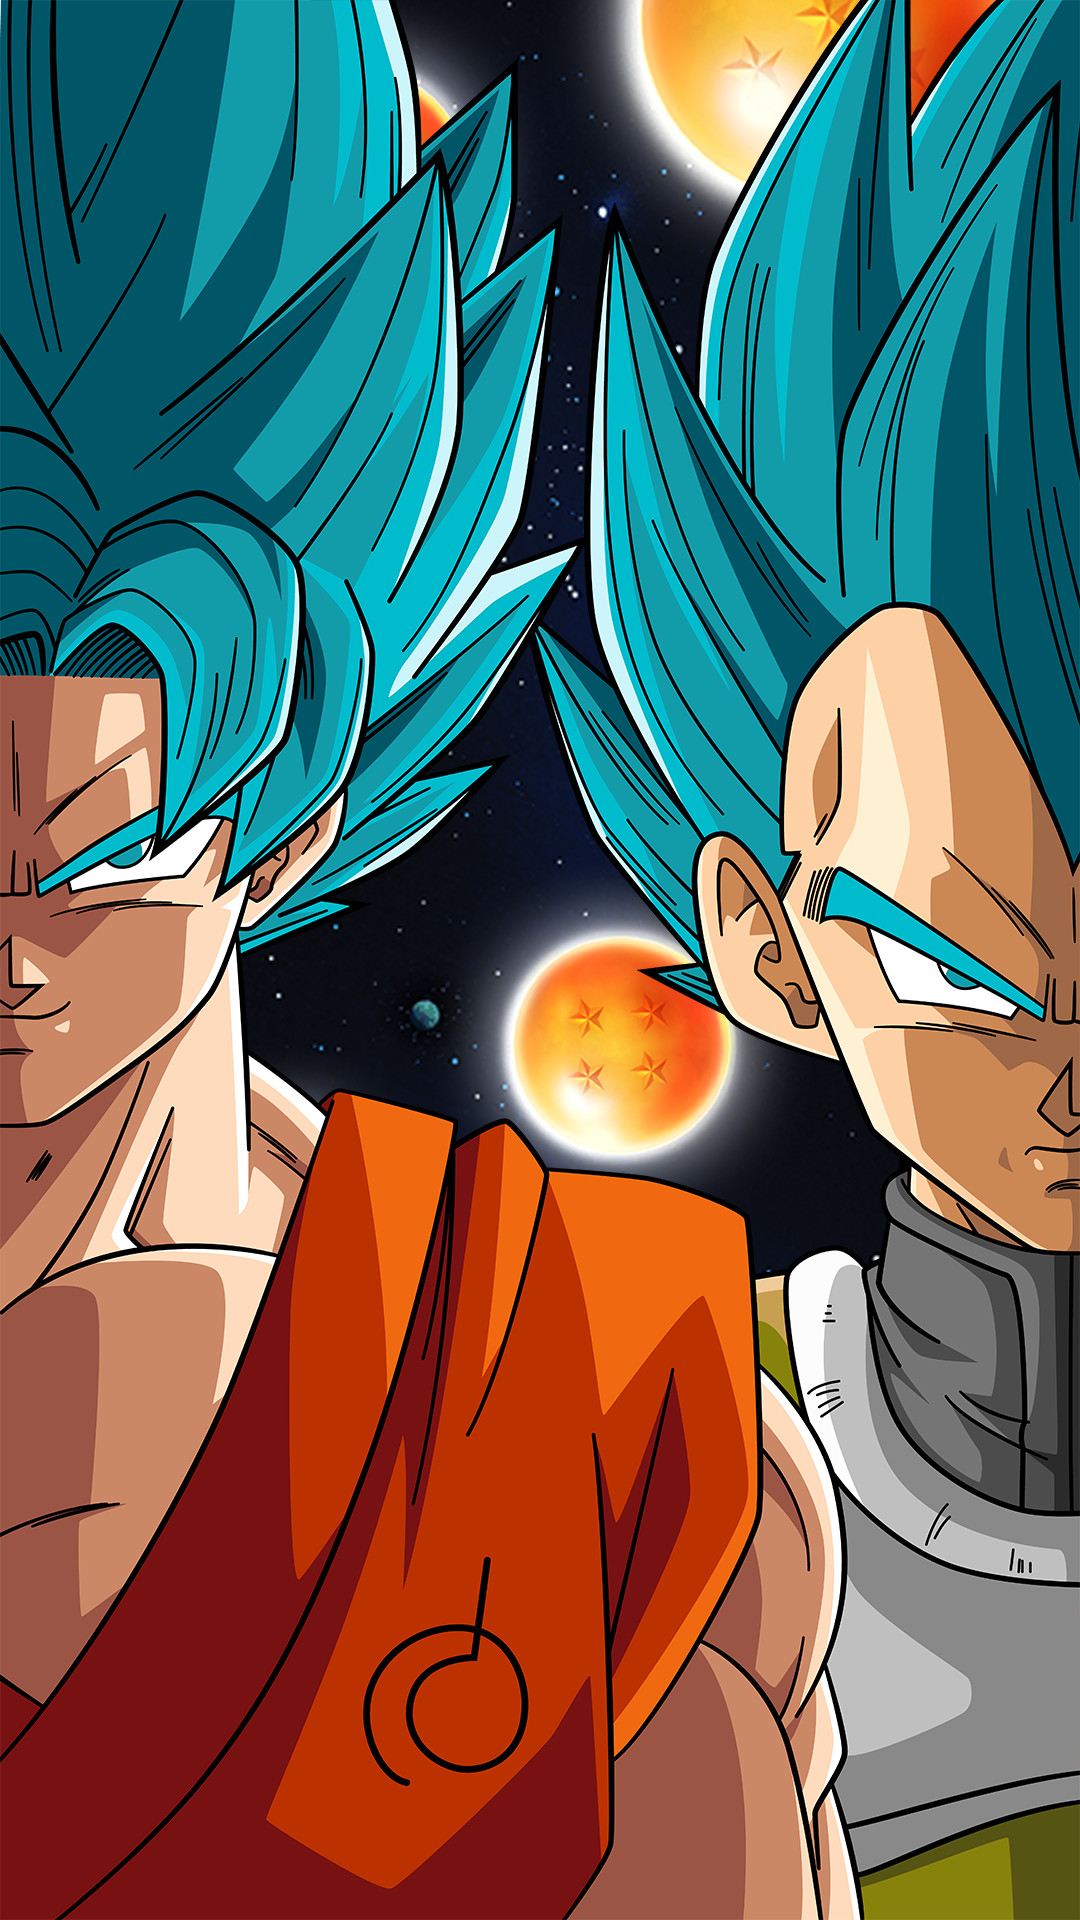 SSB Goku And Vegeta Phone Wallpaper By RayzorBlade189